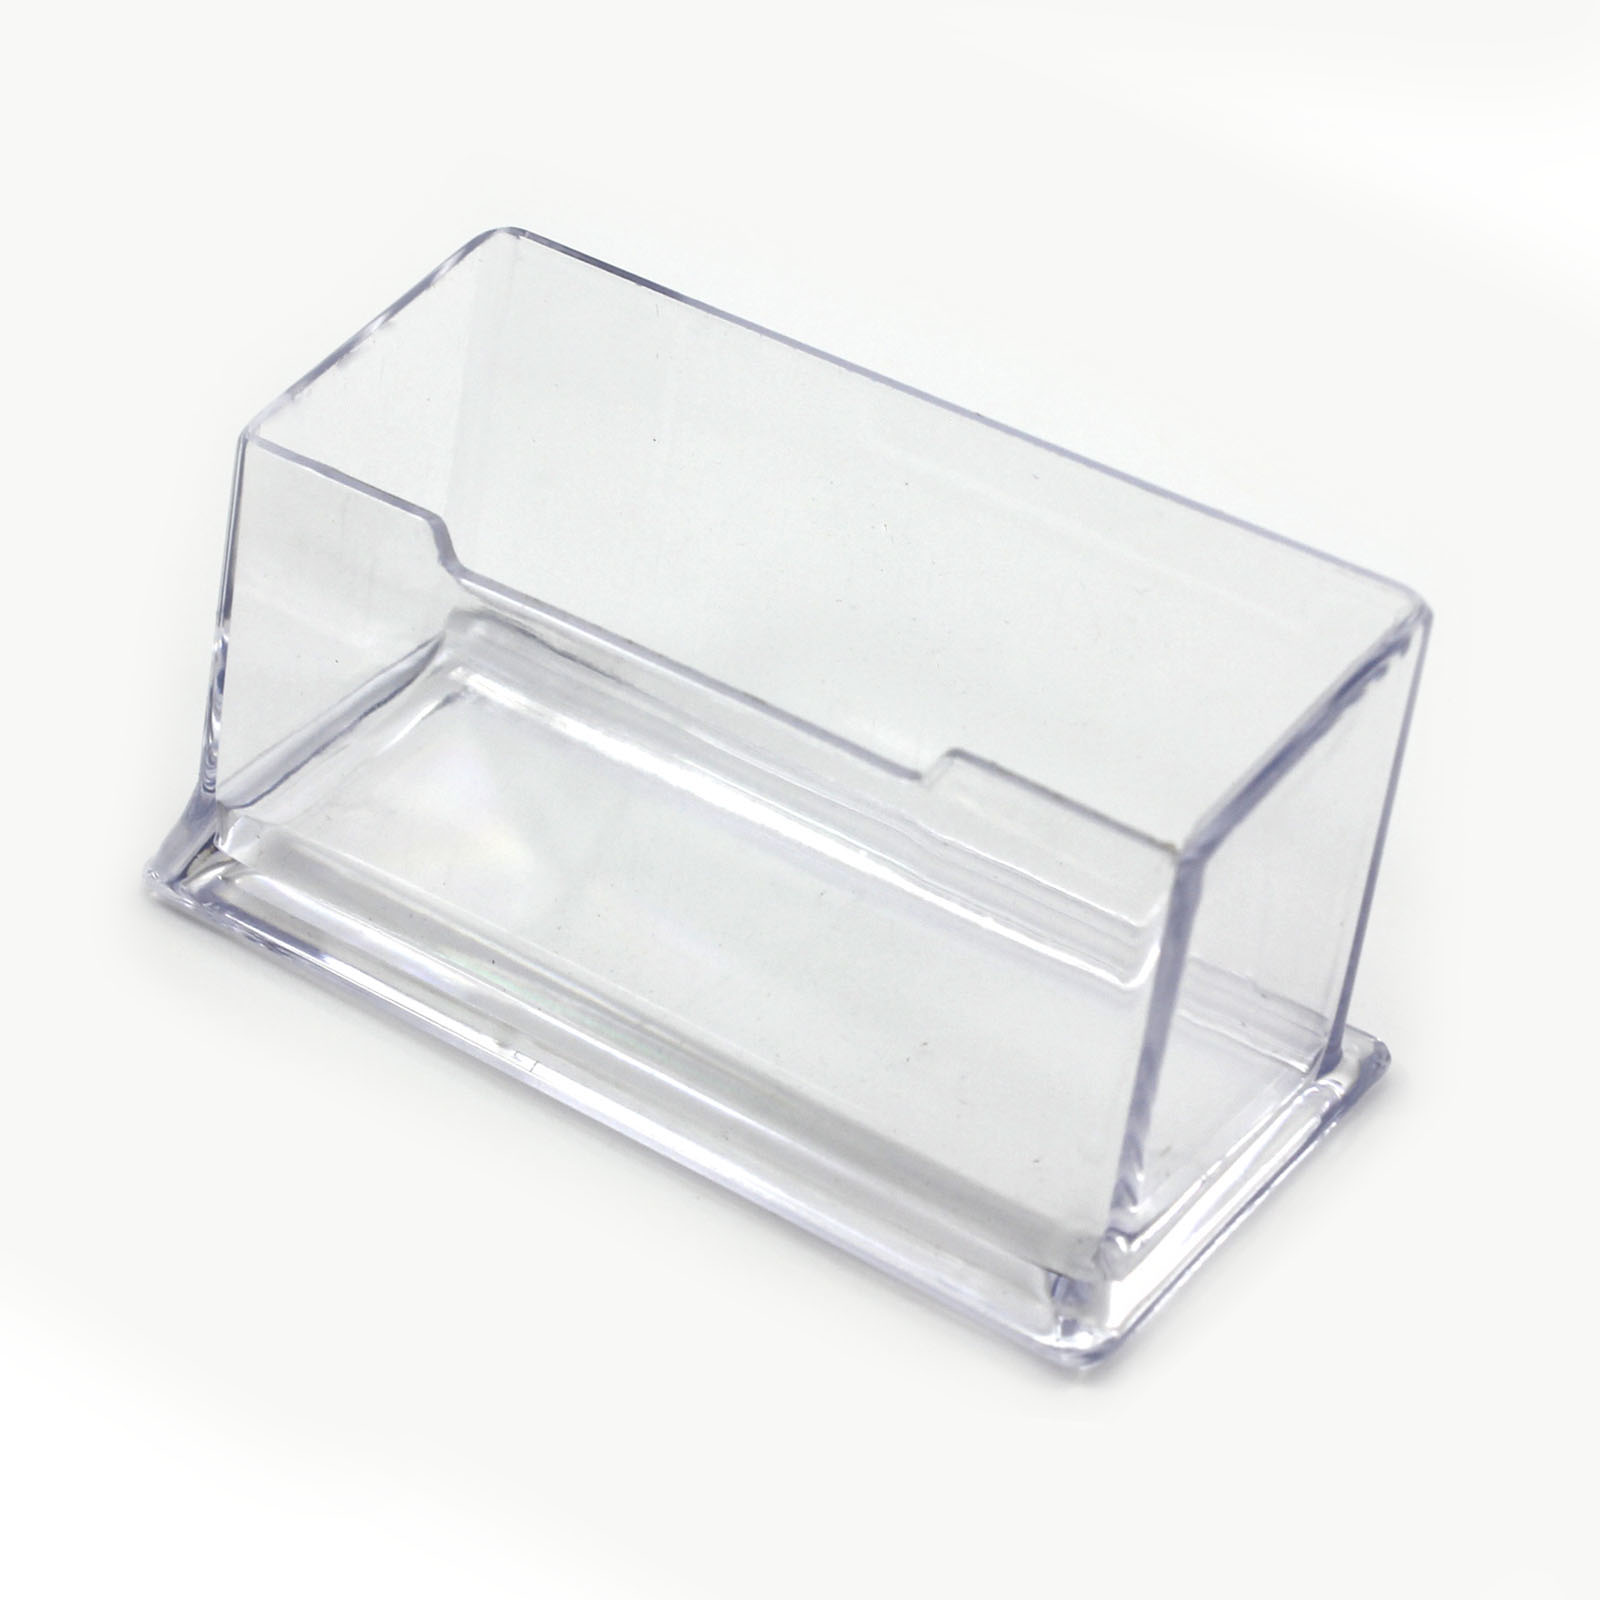 Practical Transparent Cuboid Acrylic Desktop Business Card Holder Display Box In Storage Boxes Bins From Home Garden On Aliexpress Alibaba Group